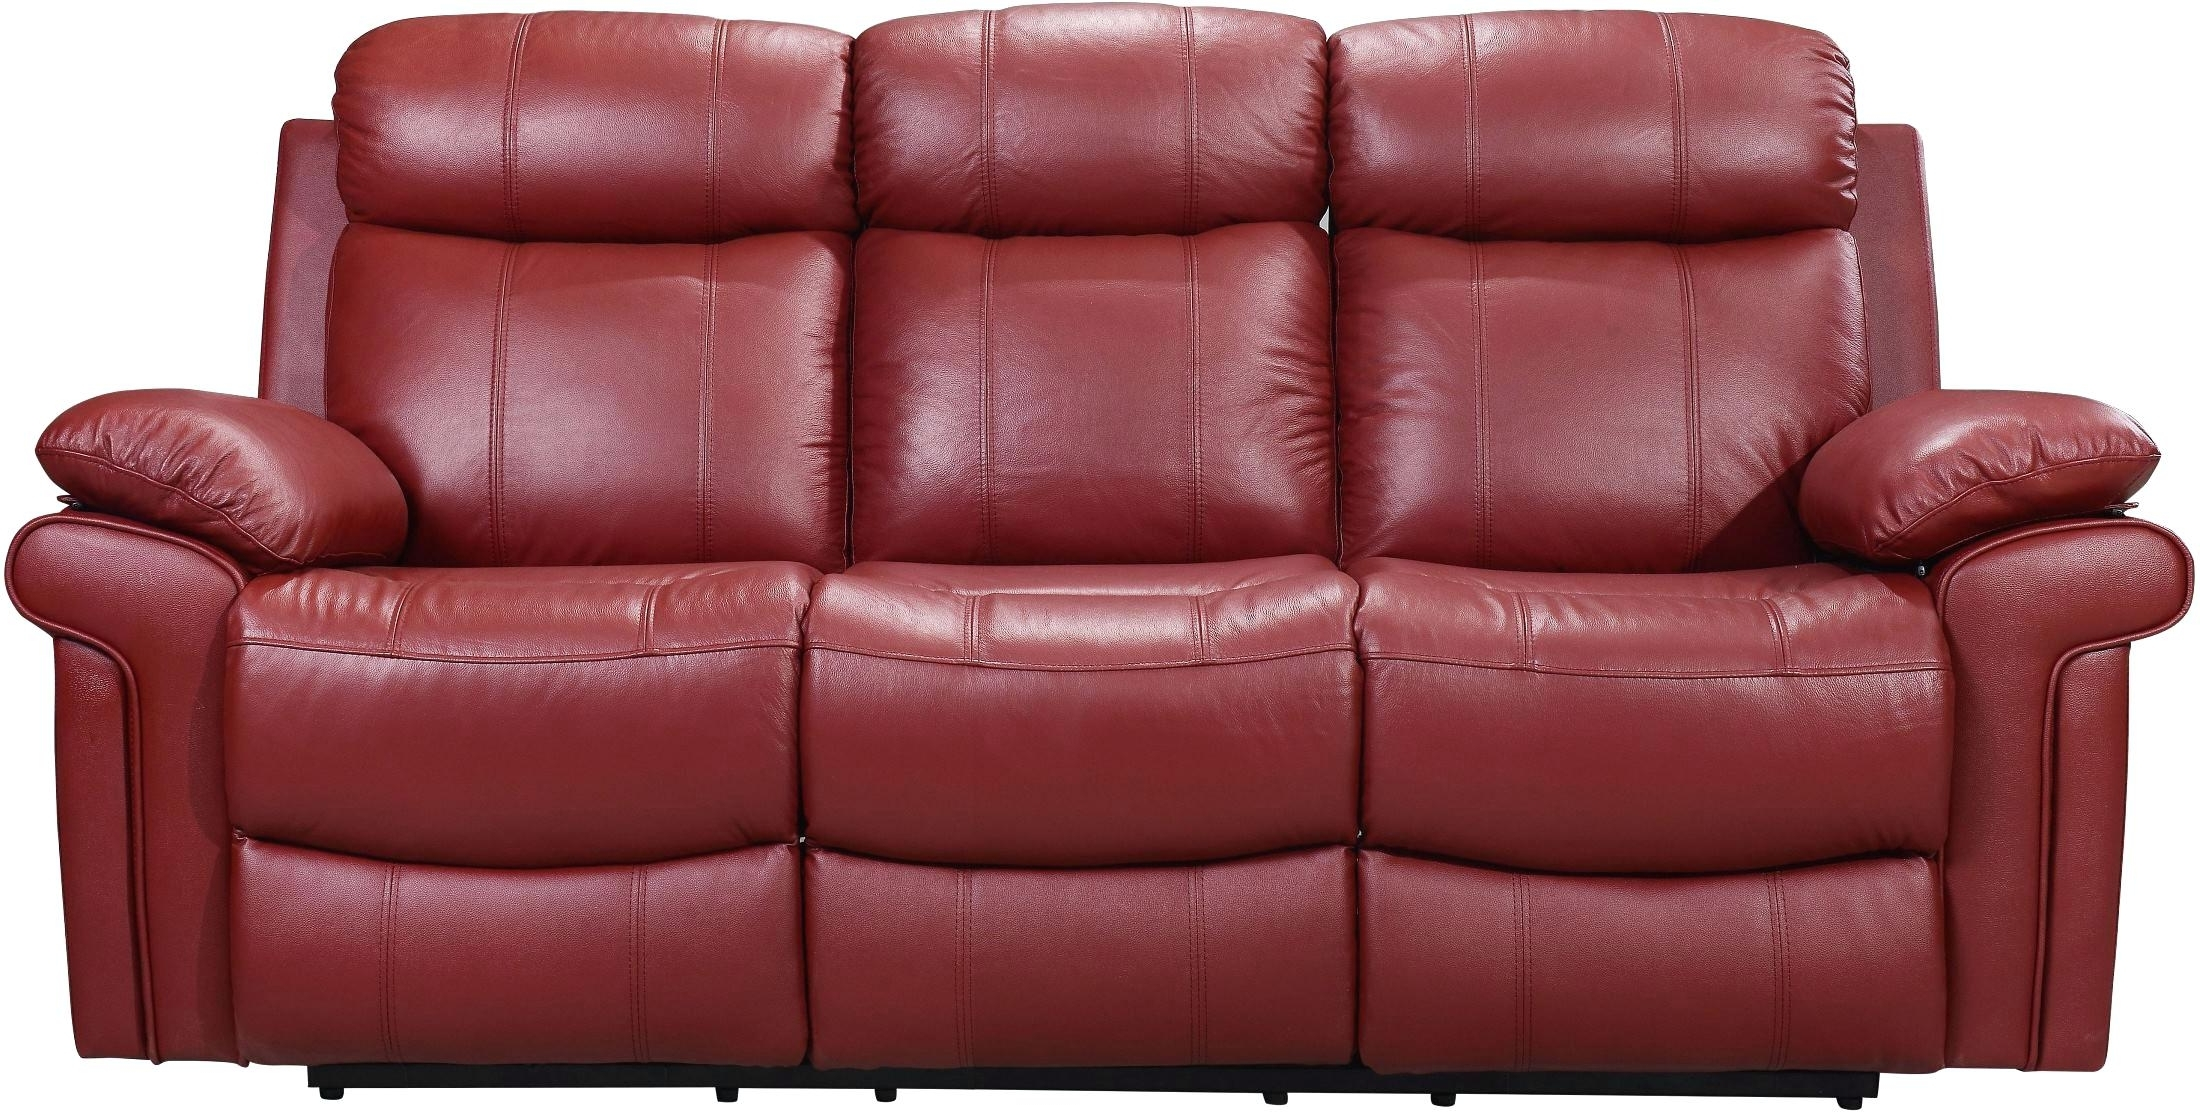 Red Leather Reclining Sofas And Loveseats Regarding Recent Red Leather Recliner Red Faux Leather Reclining Sofa Red Leather (View 16 of 20)